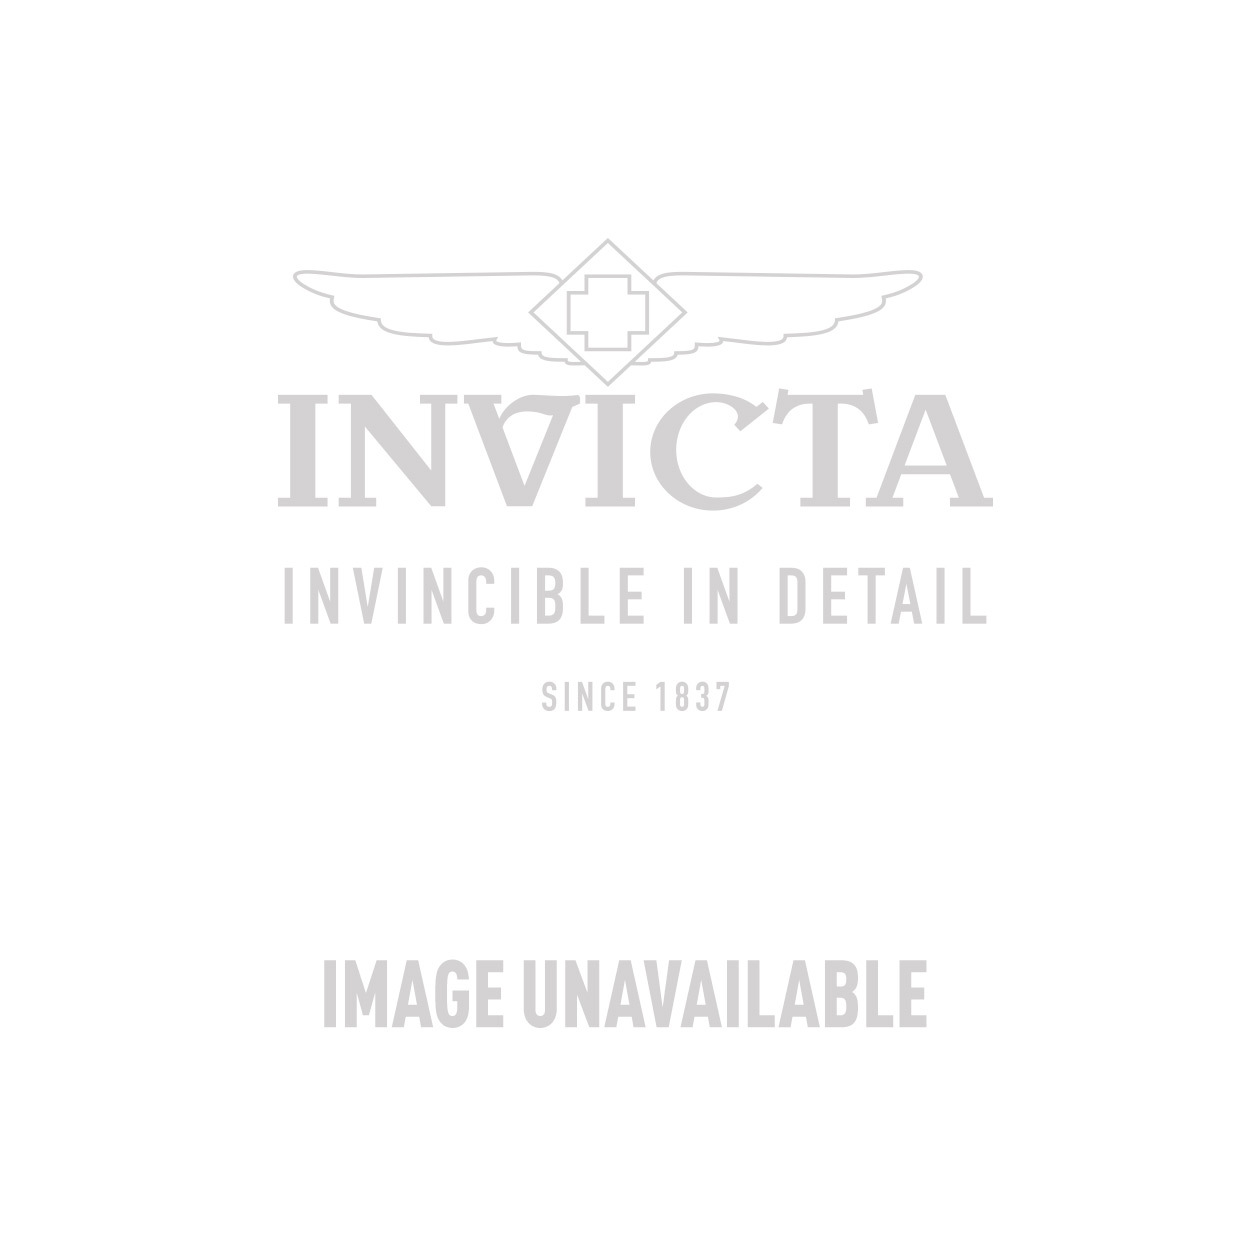 Invicta Angel Swiss Movement Quartz Watch - Stainless Steel case Stainless Steel band - Model 17419